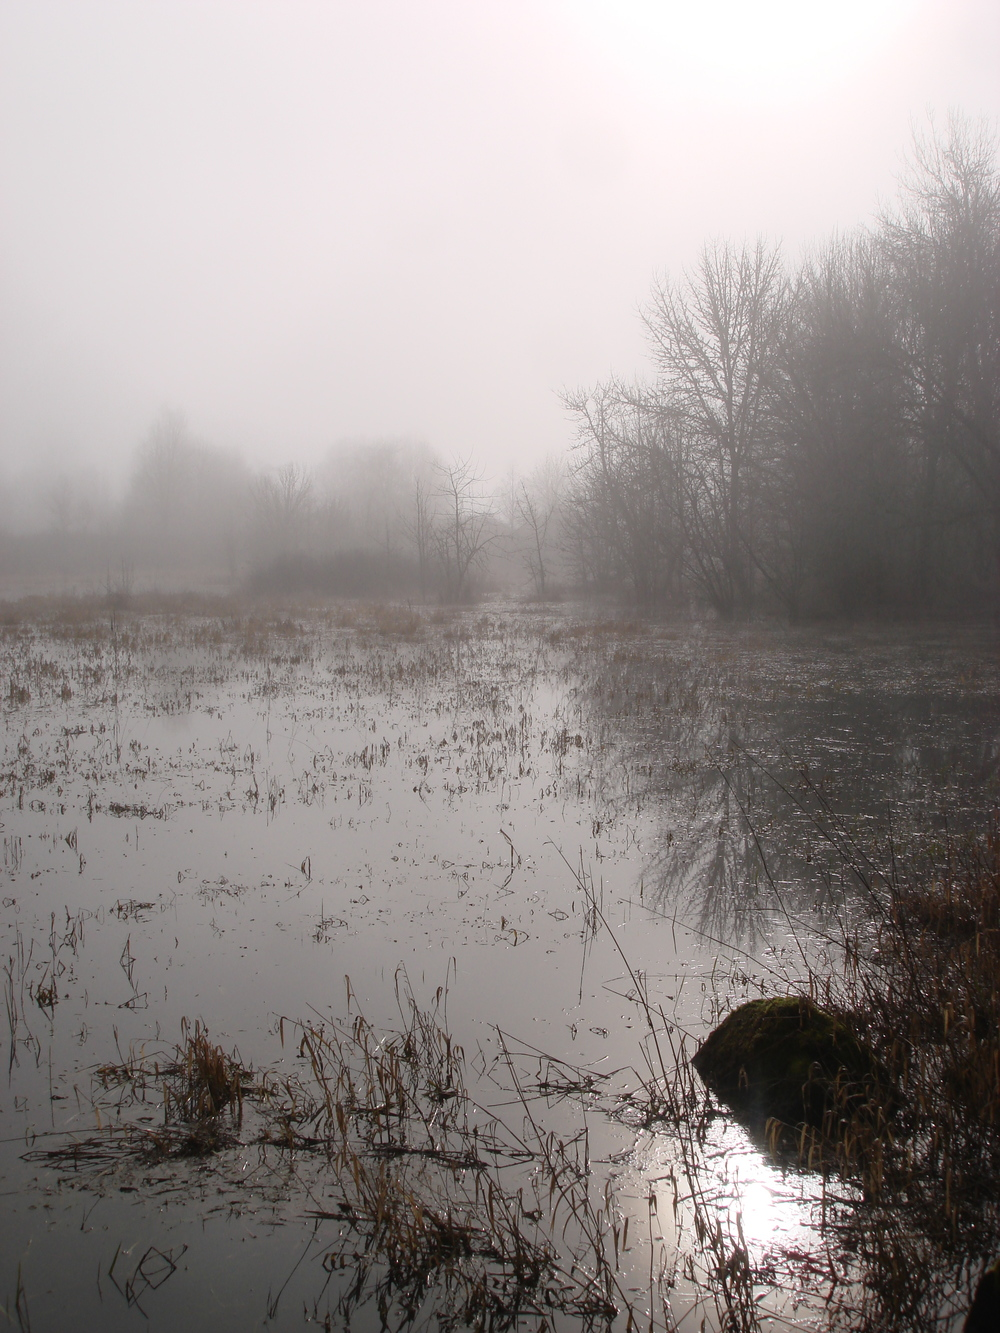 Frog Pond in the fog